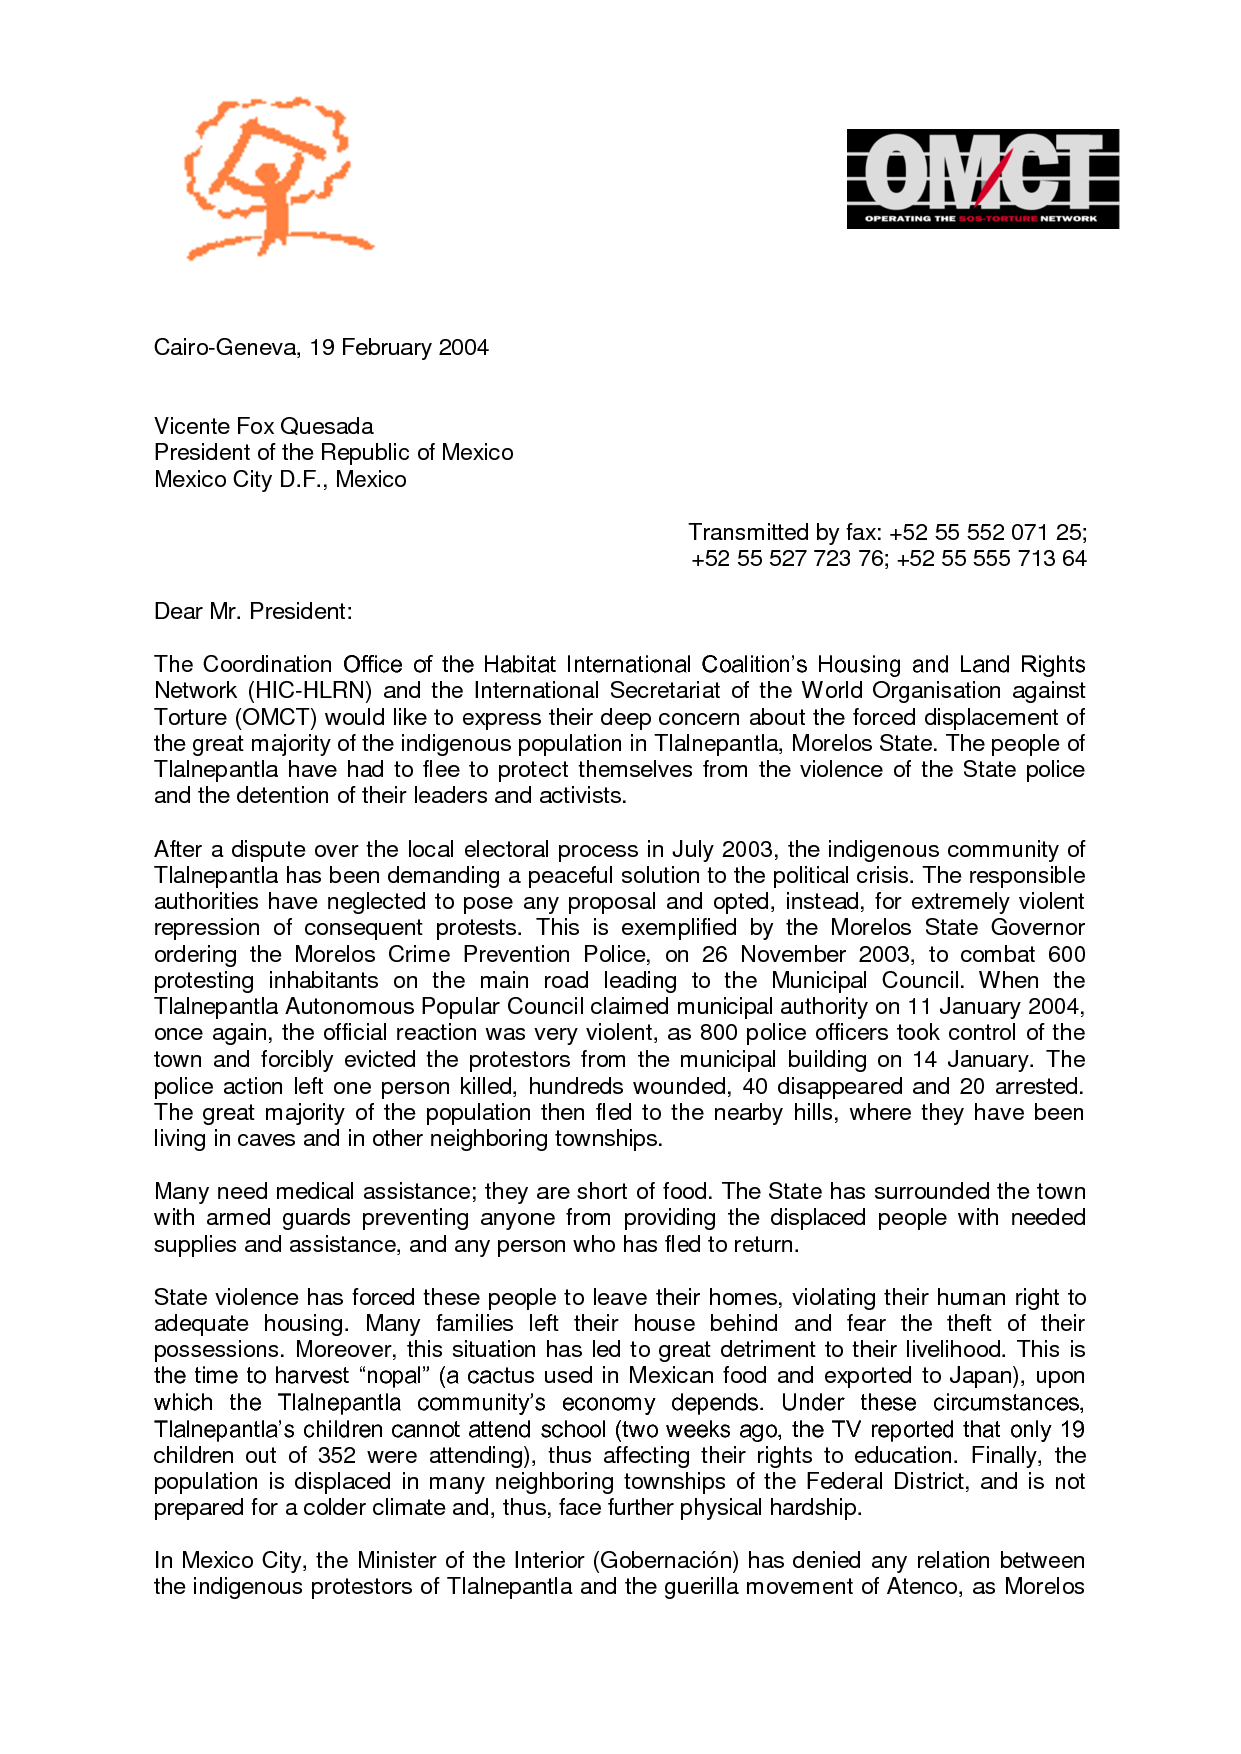 Cover Letter Template Government Job Job cover letter